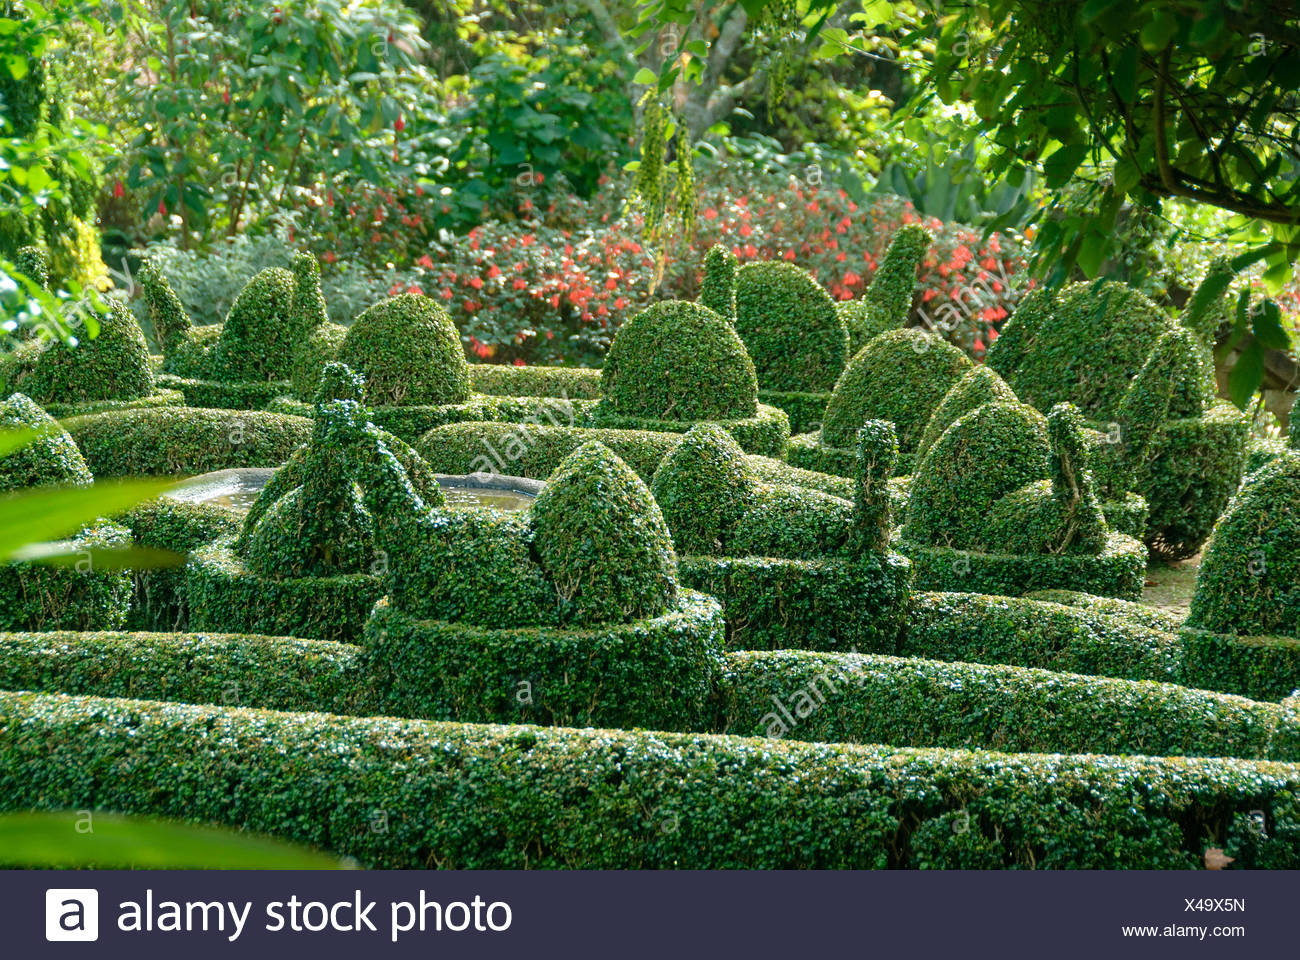 buxus hedge stockfotos buxus hedge bilder alamy. Black Bedroom Furniture Sets. Home Design Ideas